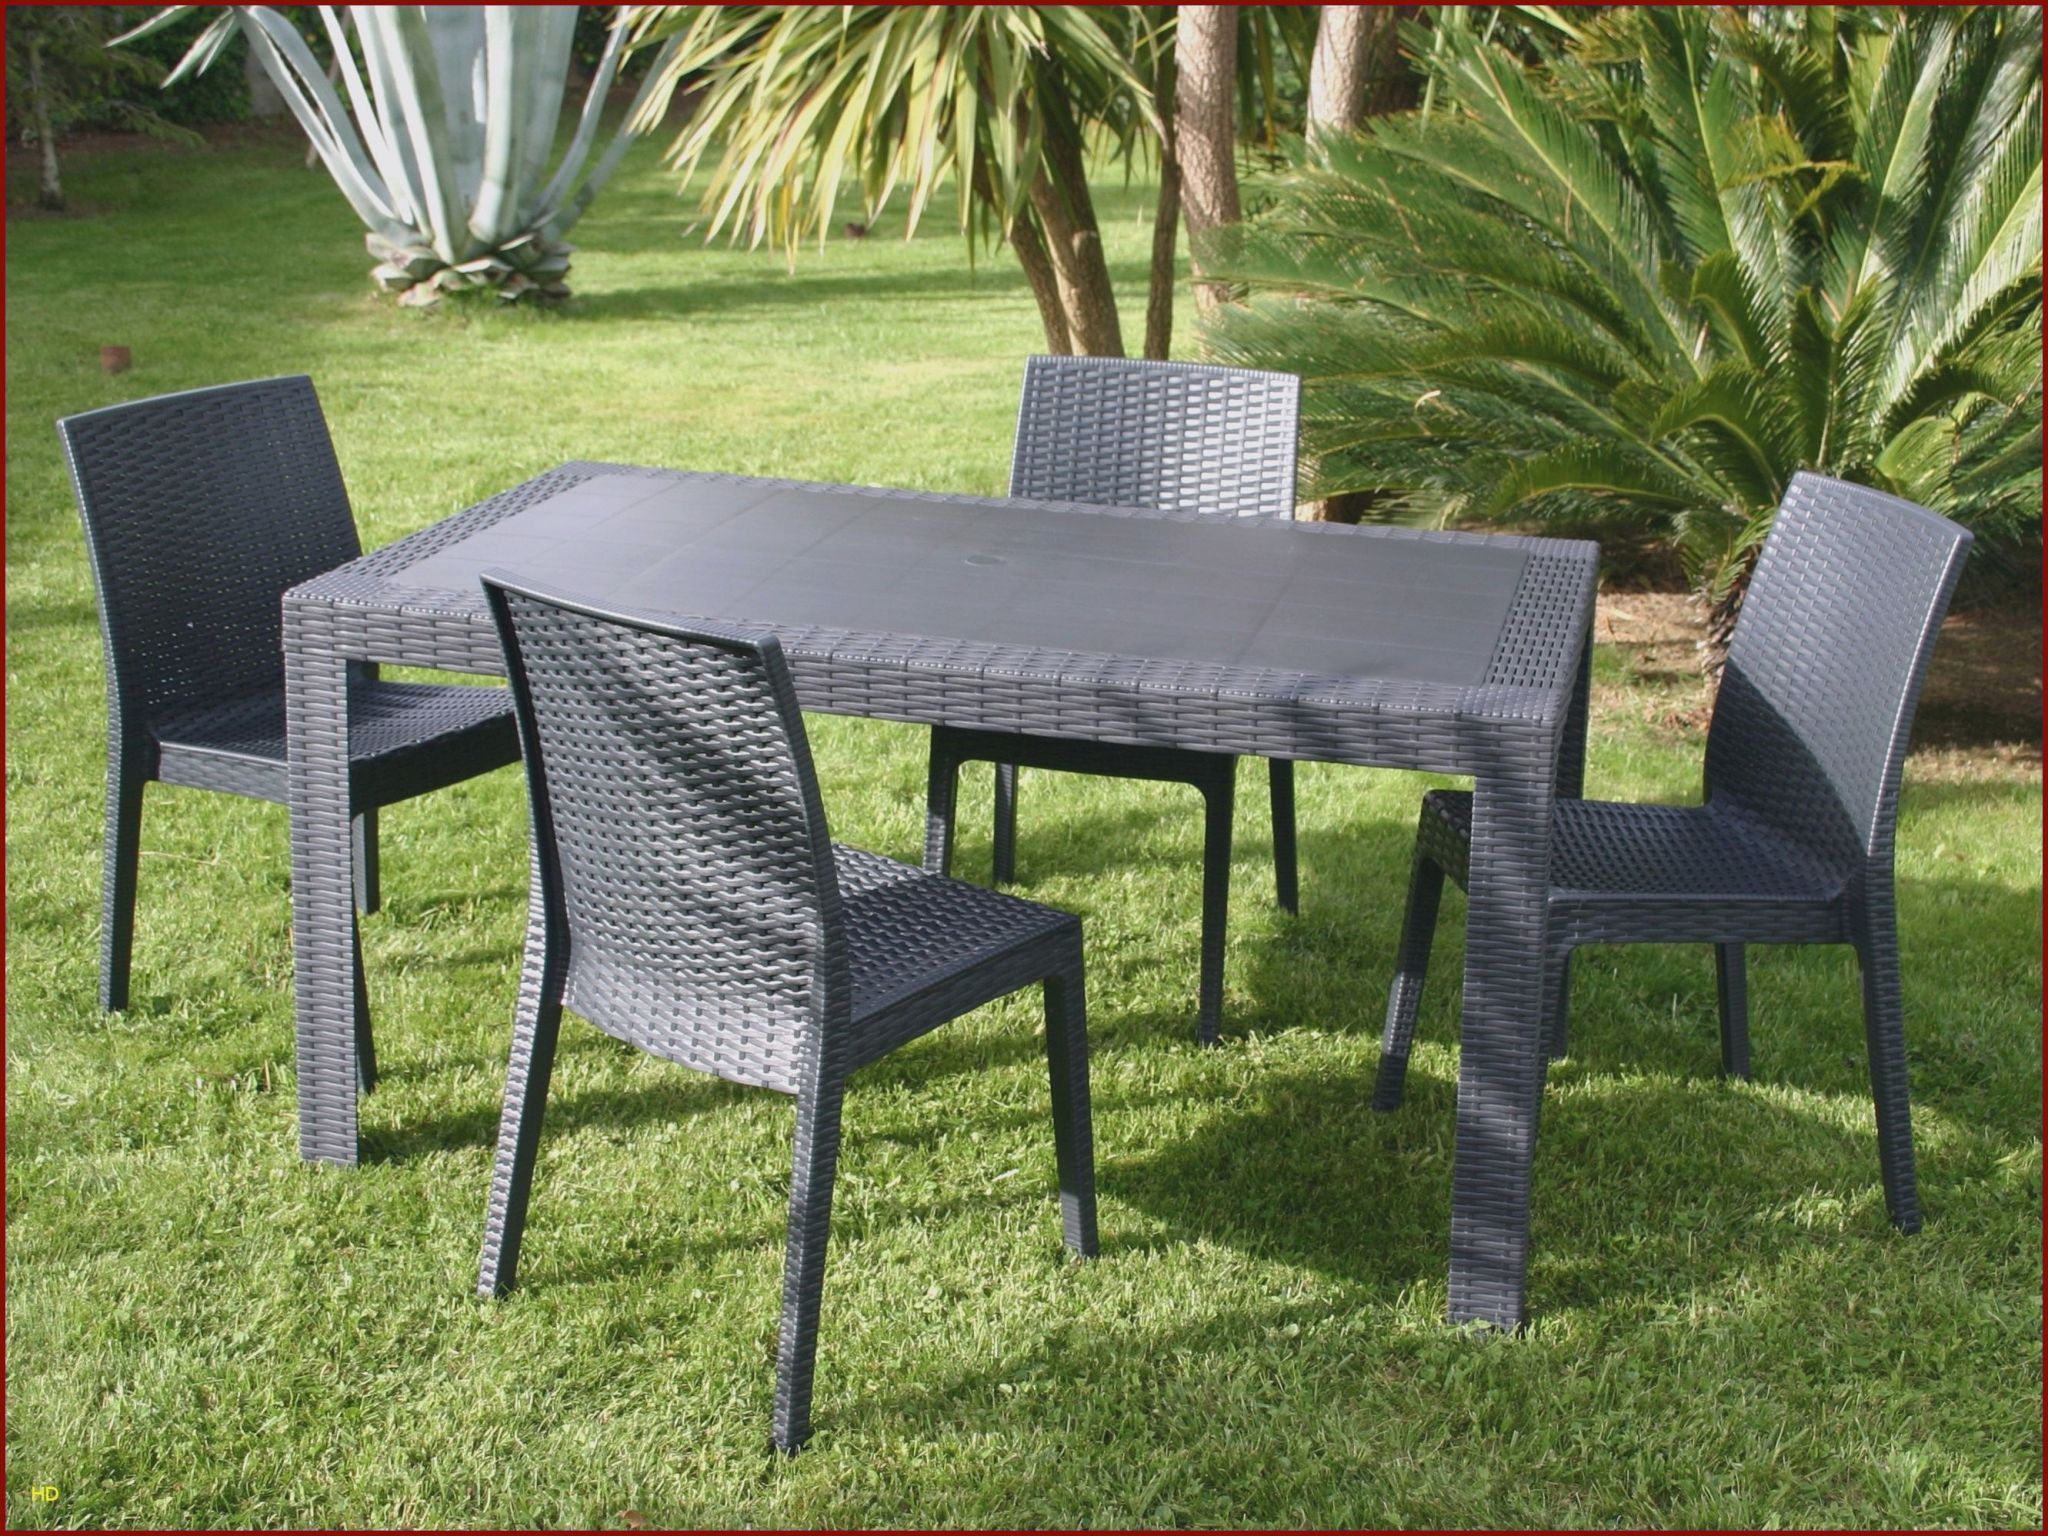 Solde Table Jardin Best Of Chaises Luxe Chaise Ice 0d Table Jardin Resine Lovely